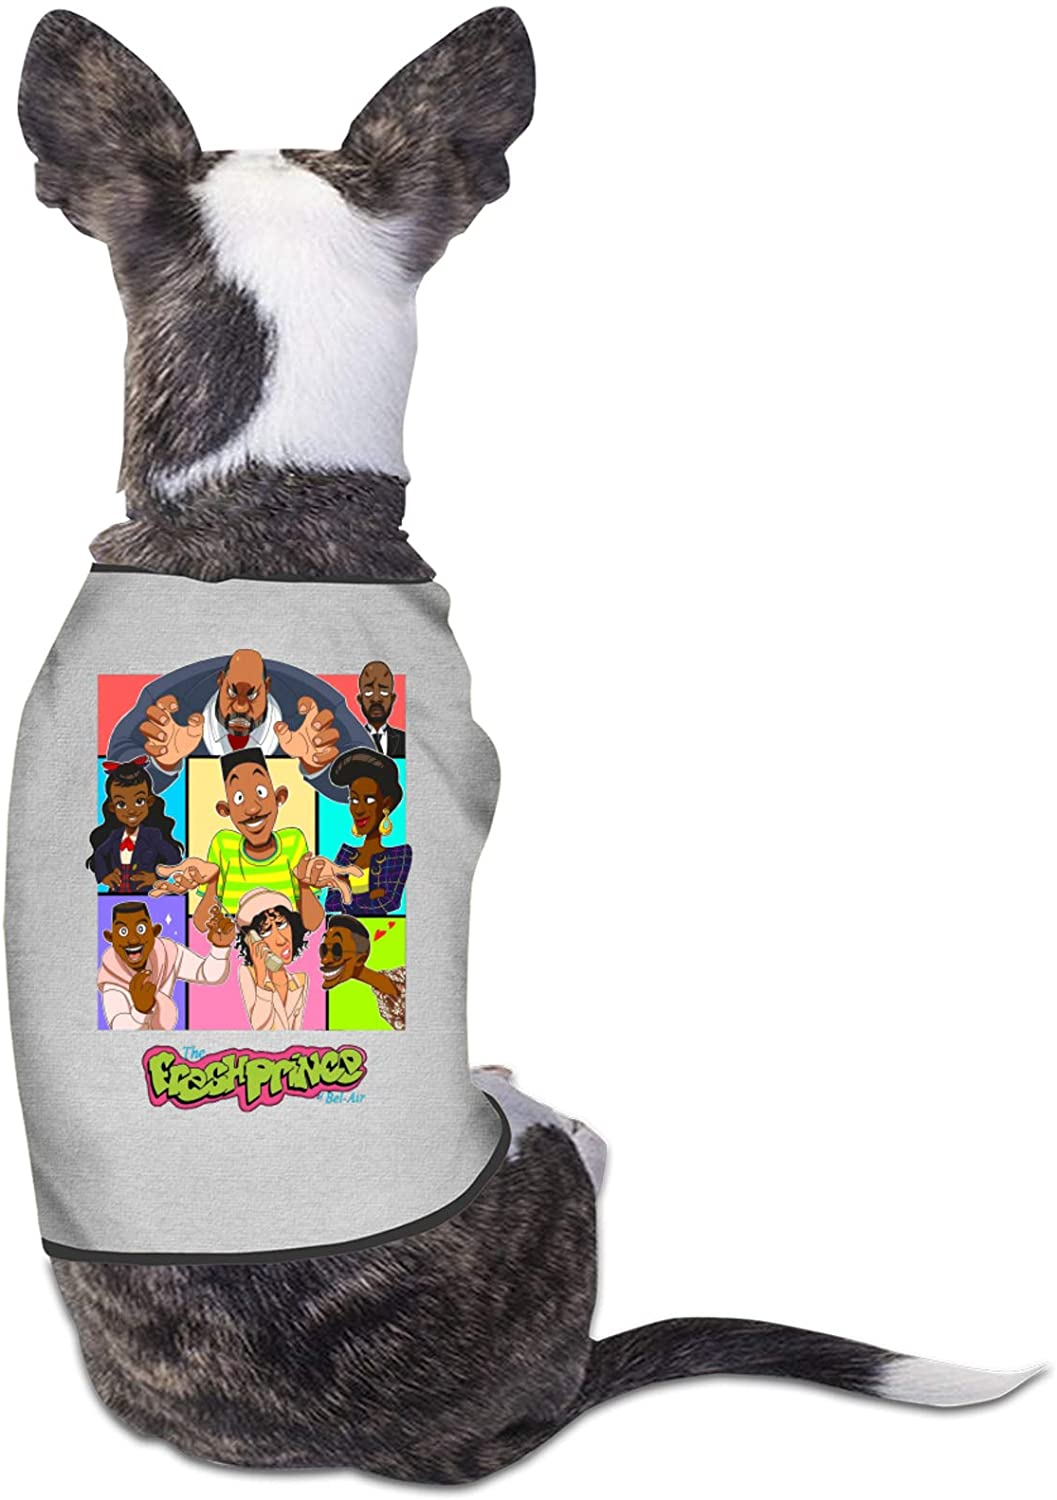 Lingassassin The Fresh Prince of Bel-Air Small Dog Girl Dog Boy Soft Cotton Vest Dog Clothes Pet Clothing Funny Cool Apparel Gray Small